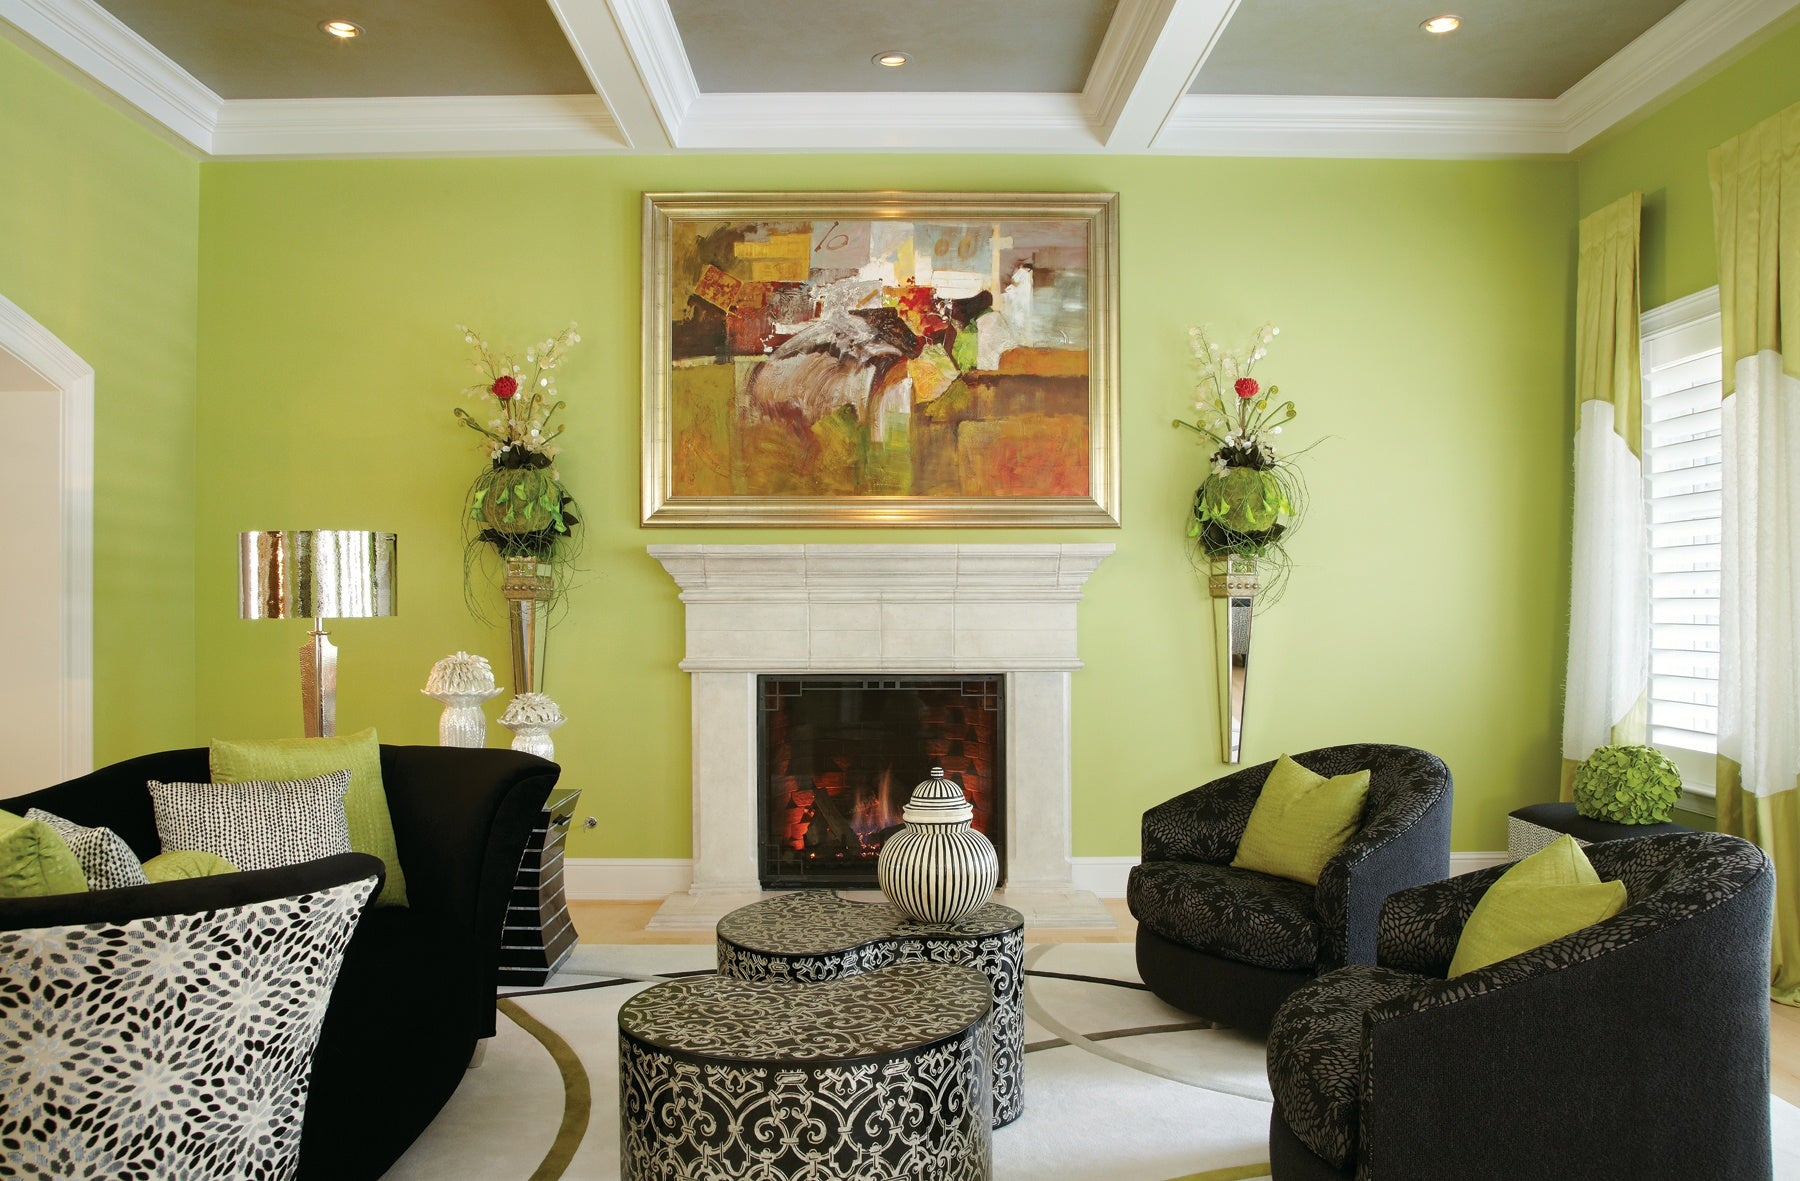 Living Room Green Living Rooms green living room ideas decorating scratchpad co room